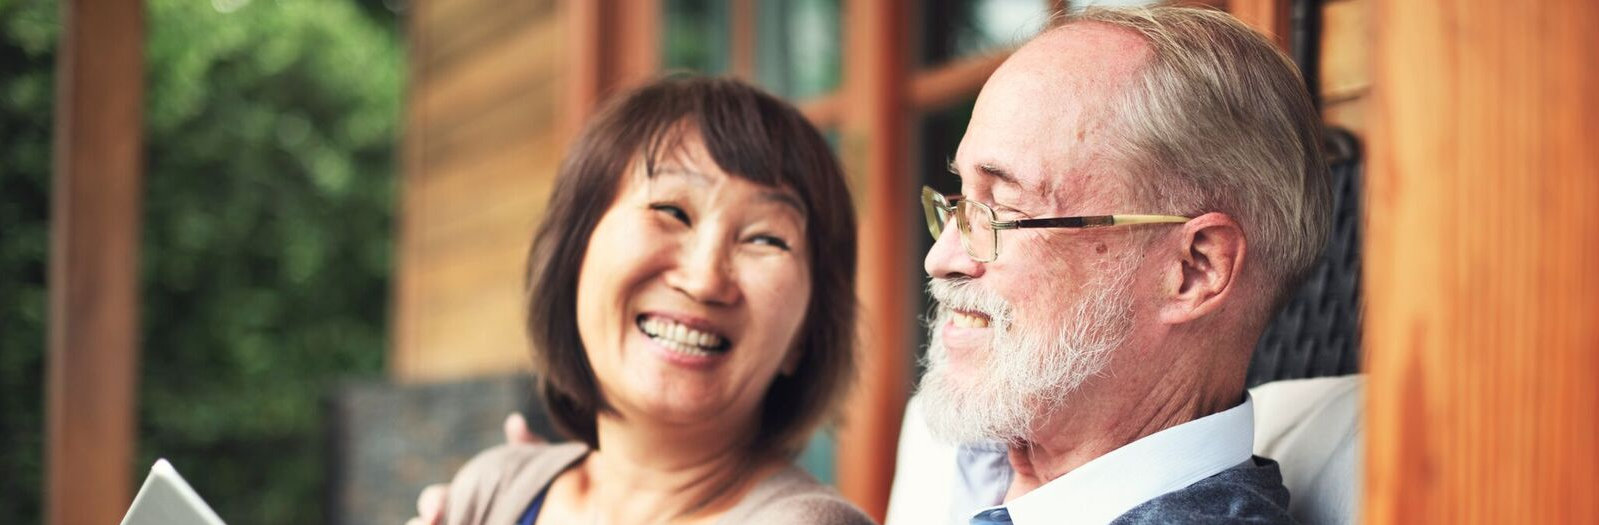 asian couple adult happiness.jpg